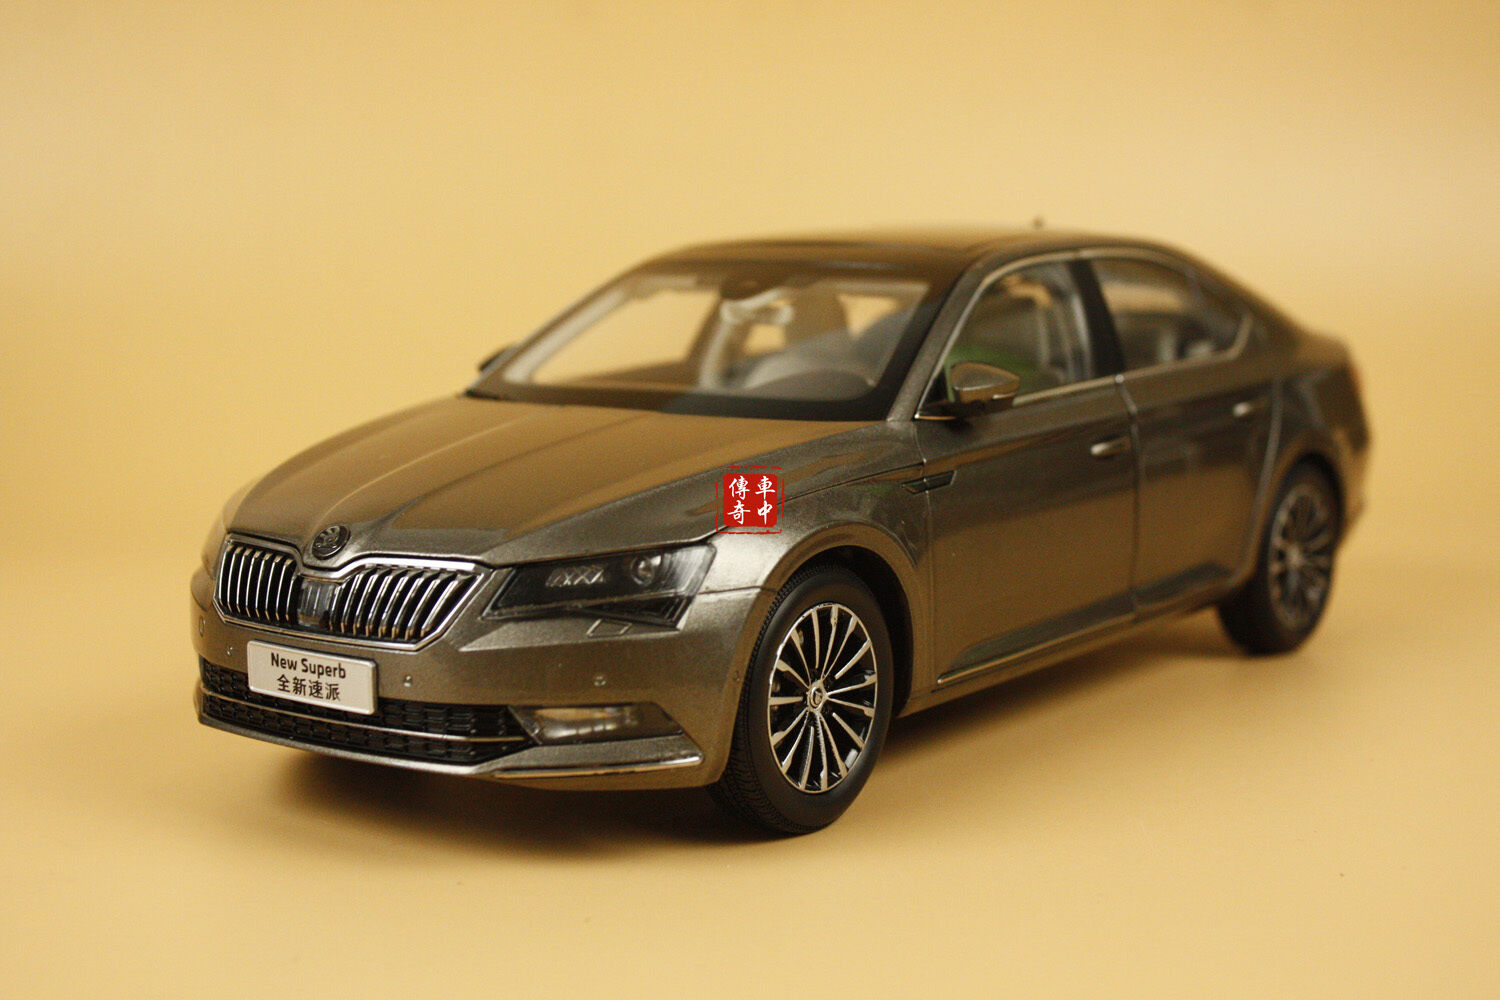 1 18 2016 all new Skoda new superb brown color+gift